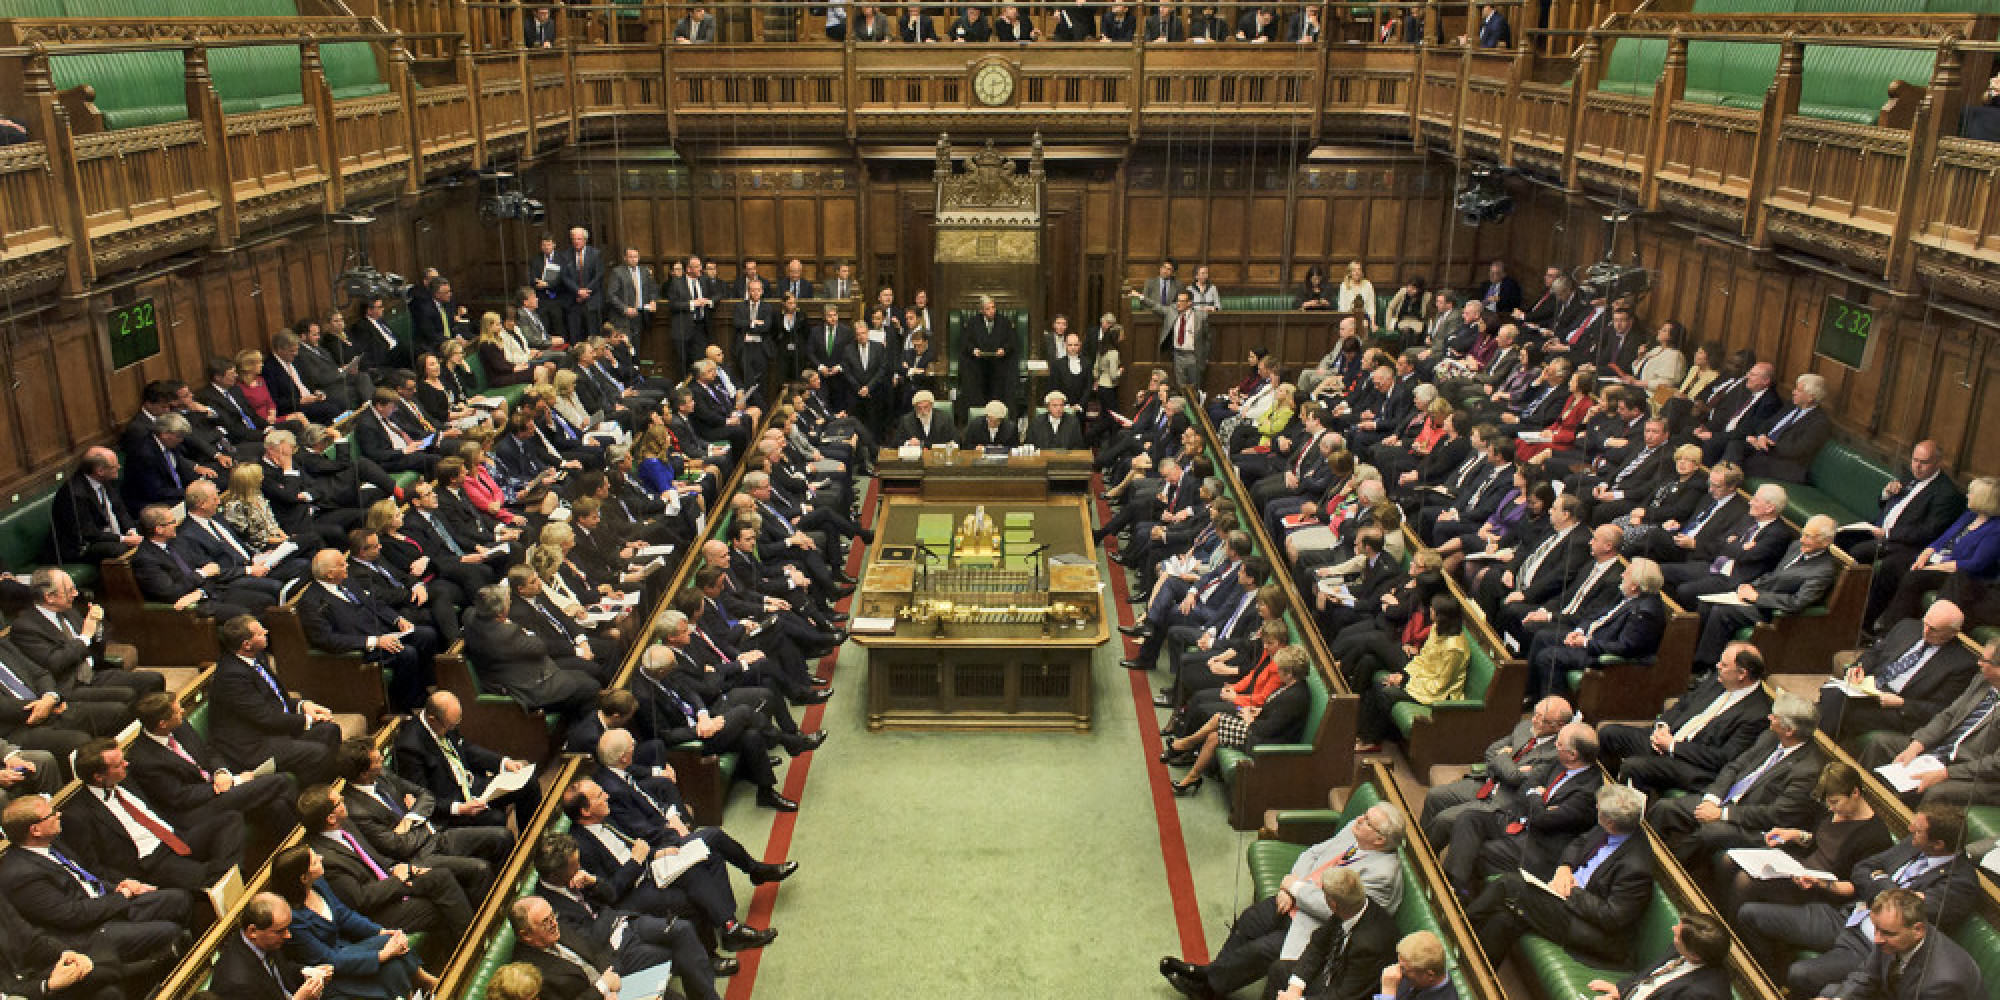 hoc MPs To Get 10% Pay Rise, But Remember Were All In This Together